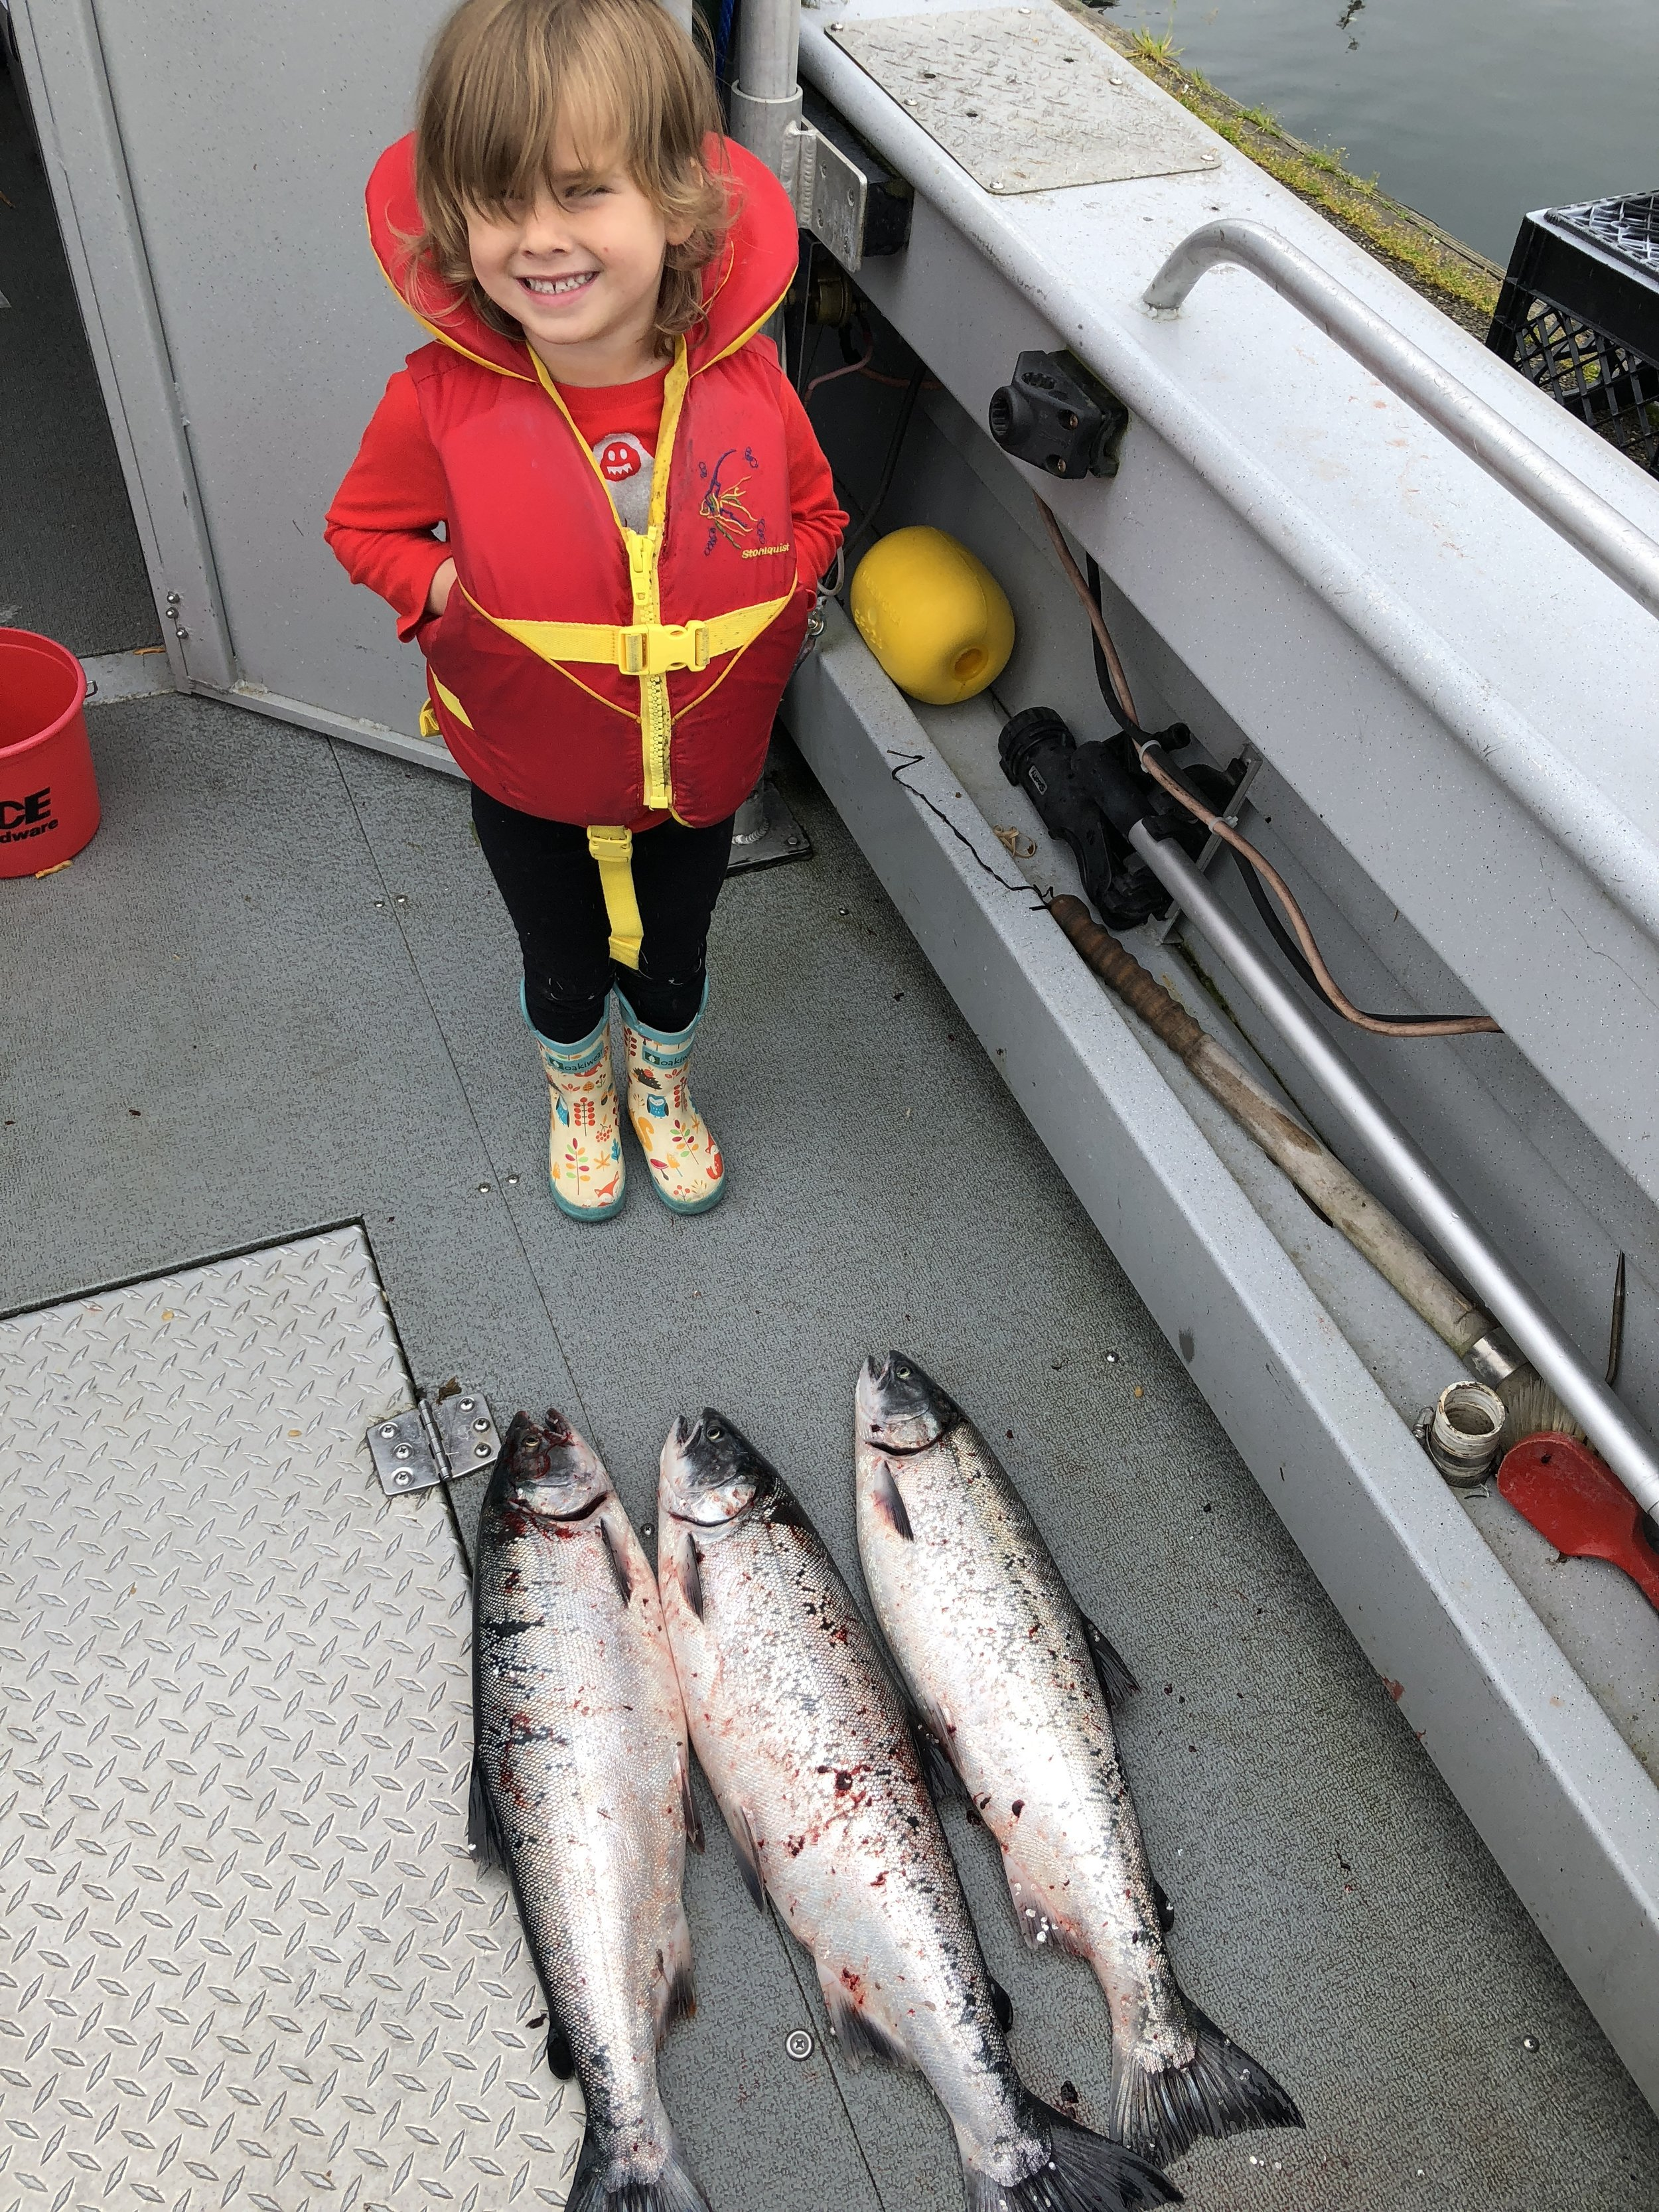 Silver Salmon Charter - The waters outside of cordova in prince william sound have some of the most outstanding silver salmon fishing in alaska. although the bulk of silvers caught out of cordova are from the river systems fishstix charters is proud to offer anglers the opportunity to go after these amazing fish in the saltwater. an experience you will not forgert.our silver salmon charters are 3/4 day trips. typically this is provides more than enough action to make you plenty tired. half day trips may be available depending on the location of the fish.several methods are used to target silvers. typically we will troll until we find a good school of fish then switch to mooching rigs for a more hands on experience. If the fish are on the surface we can cast spinners and troll flies on the surface.